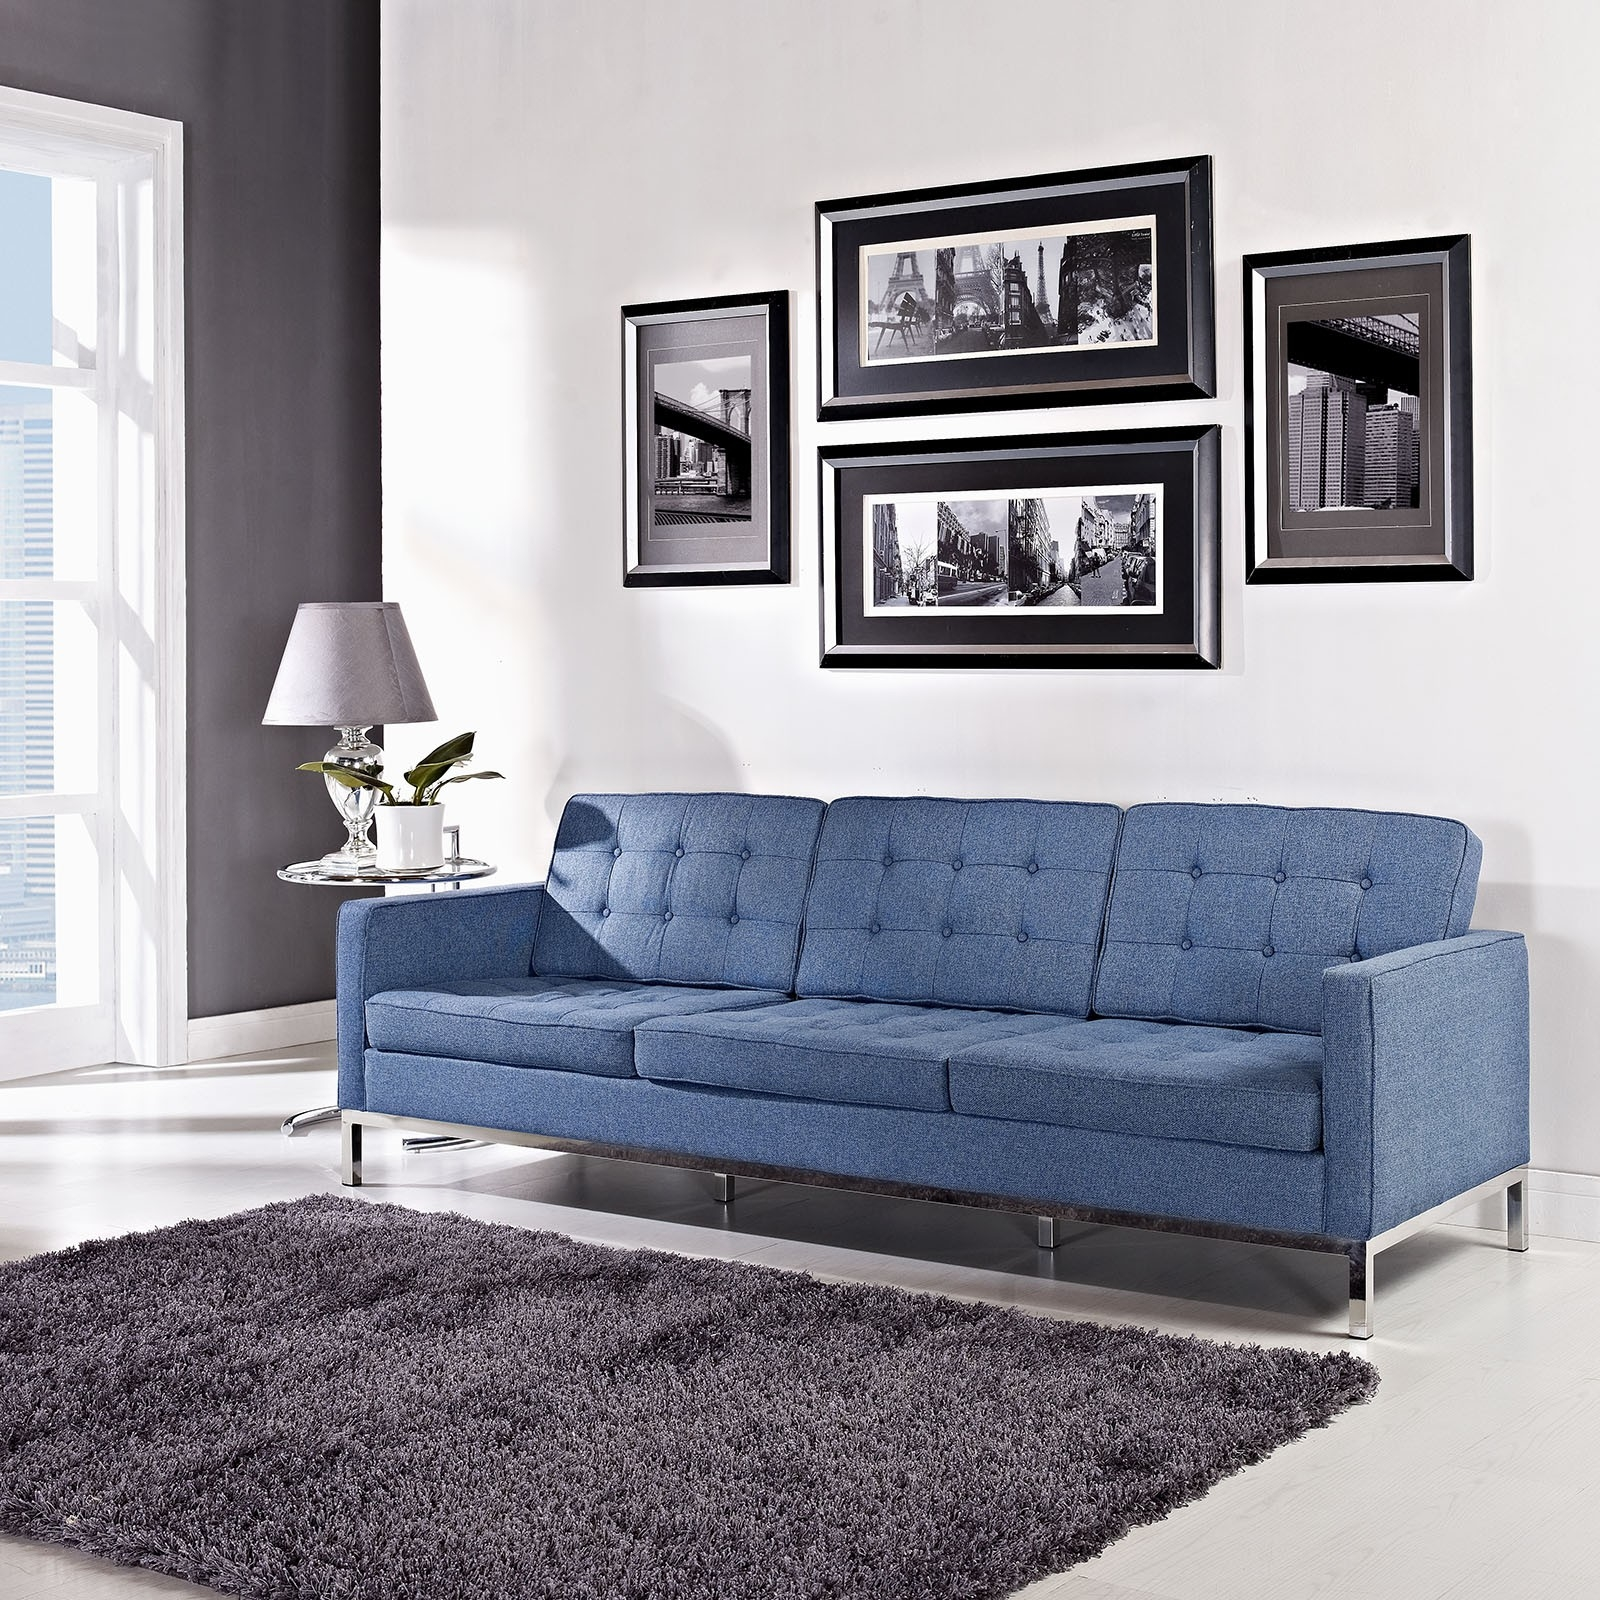 Sofas Center Florence Knoll Sofa Comfort Chaise Reproduction Regarding Florence Medium Sofas (View 4 of 15)